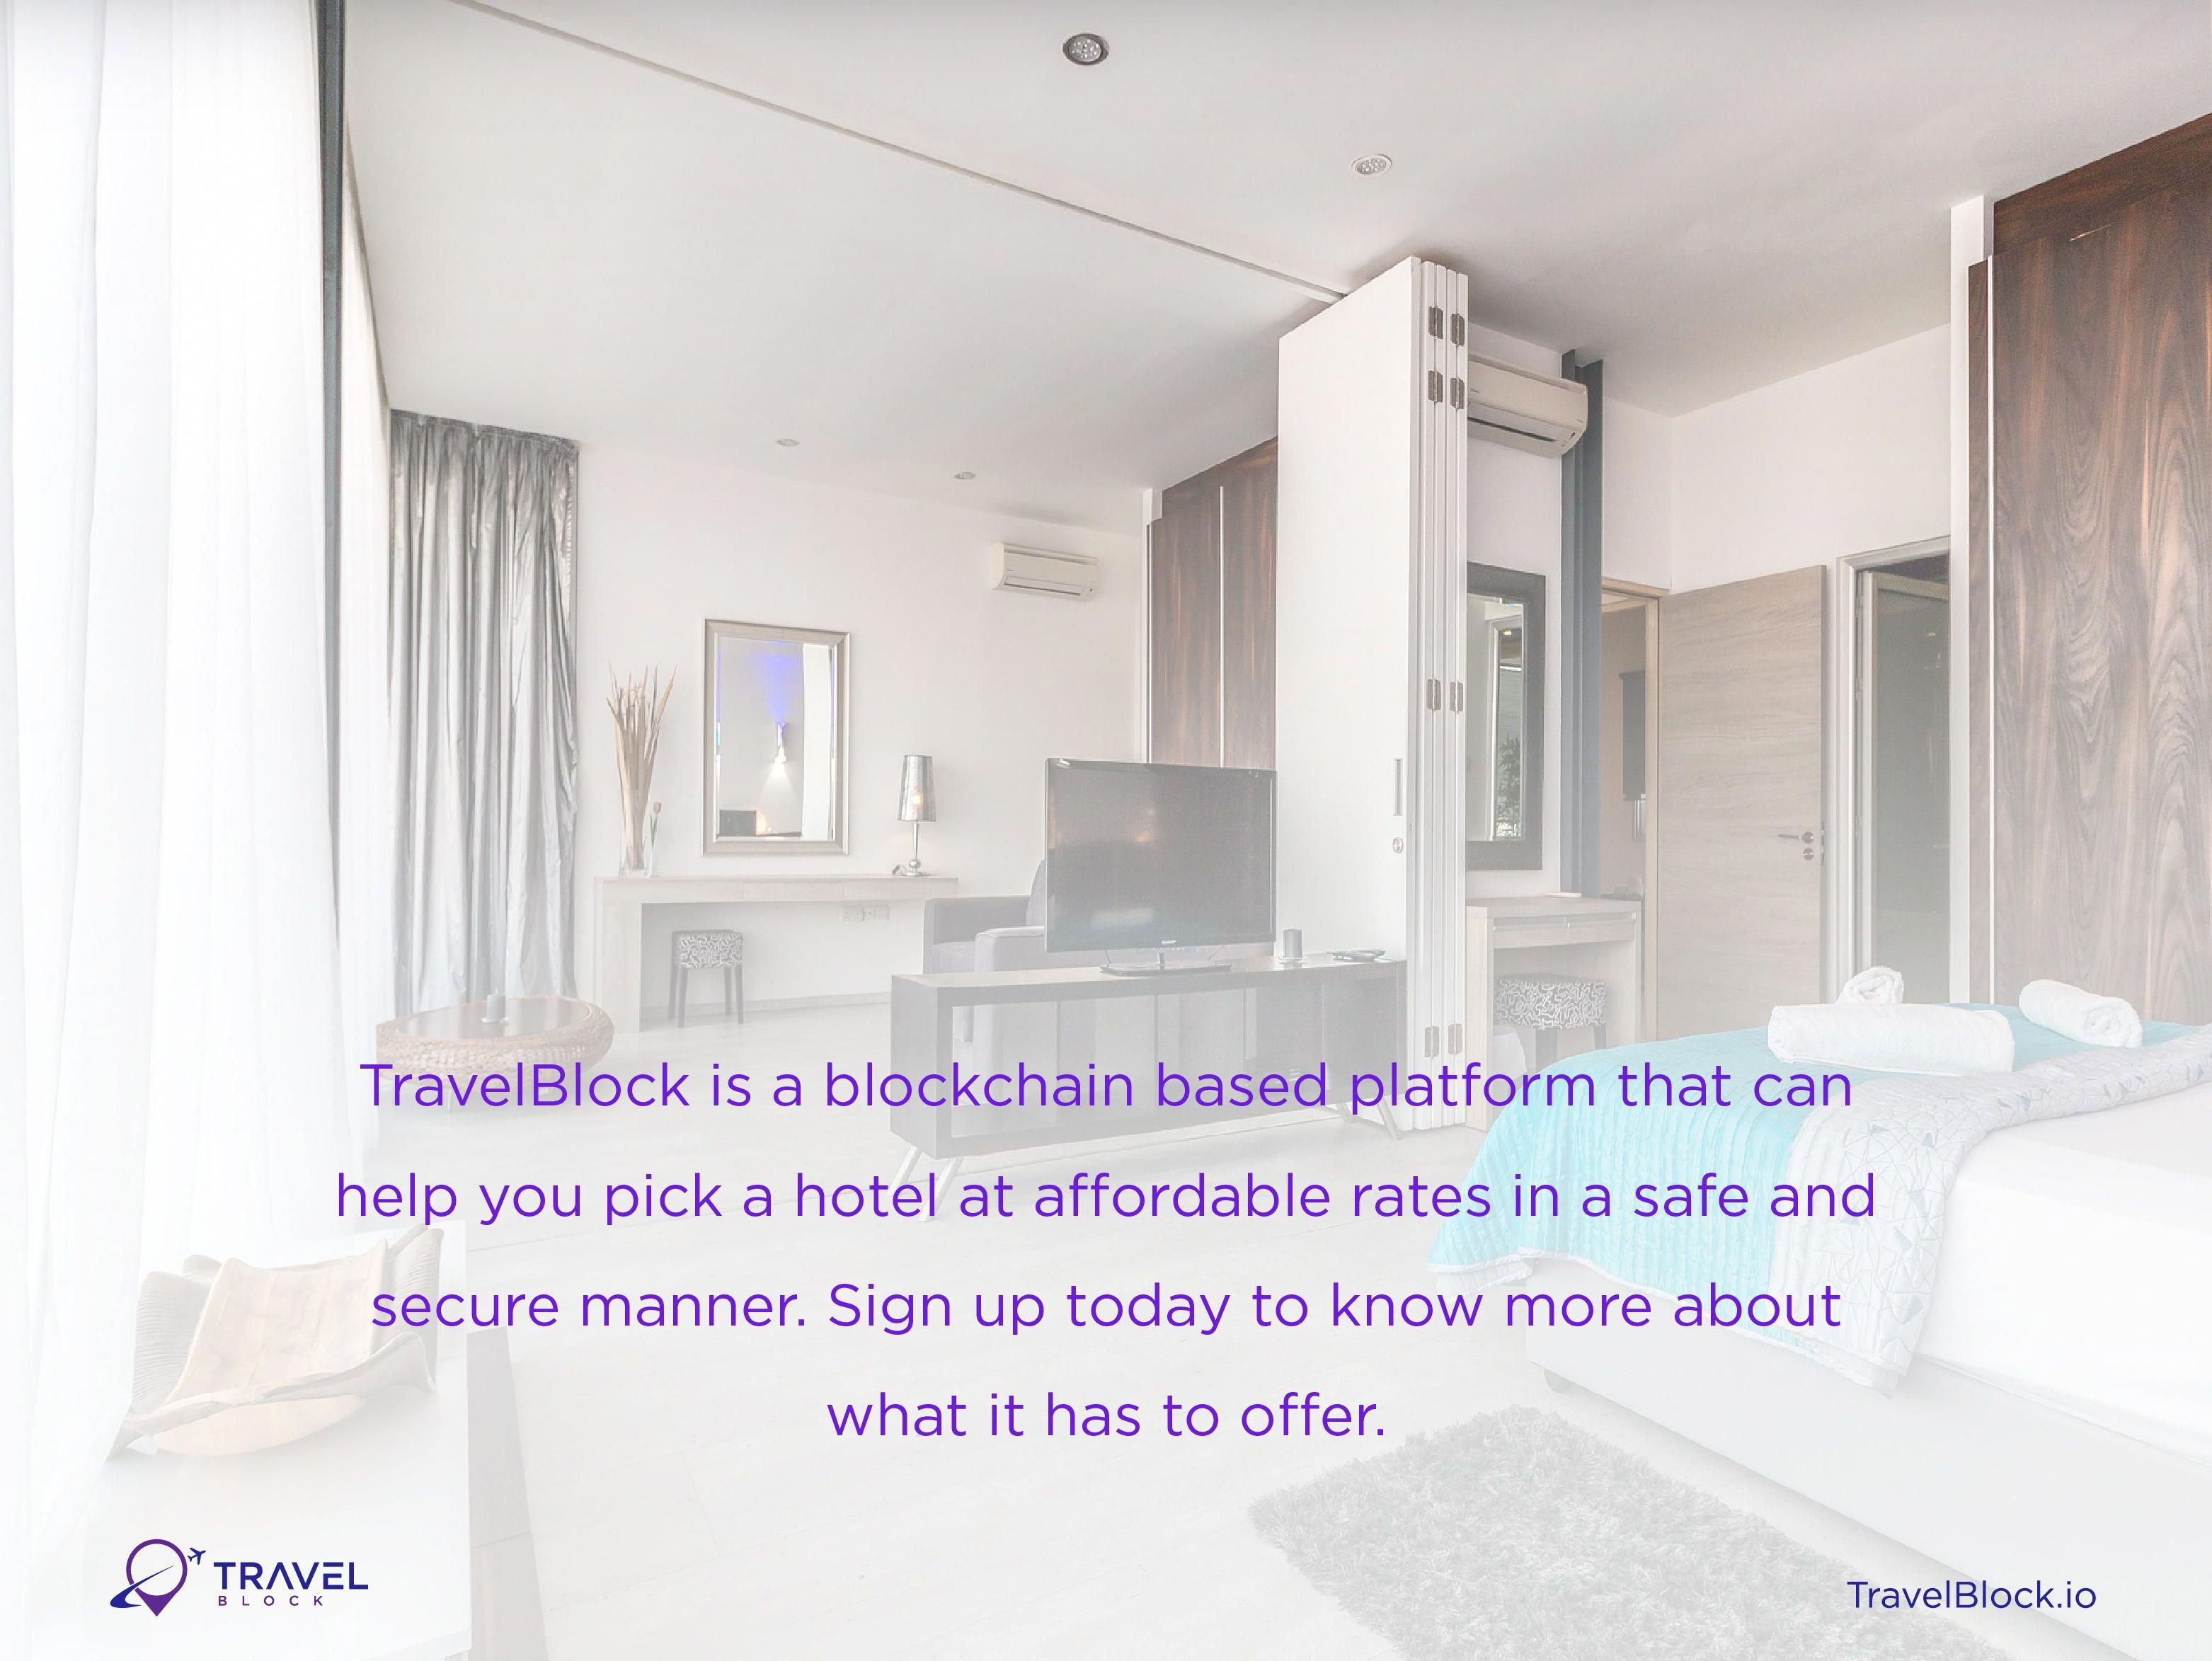 Travelblock Io Meta The Hotel Industry Is Full Of Fake And Paid Reviews That Are Written Only To Deceive Customers Ch Hotel Hotel Industry Book A Hotel Room